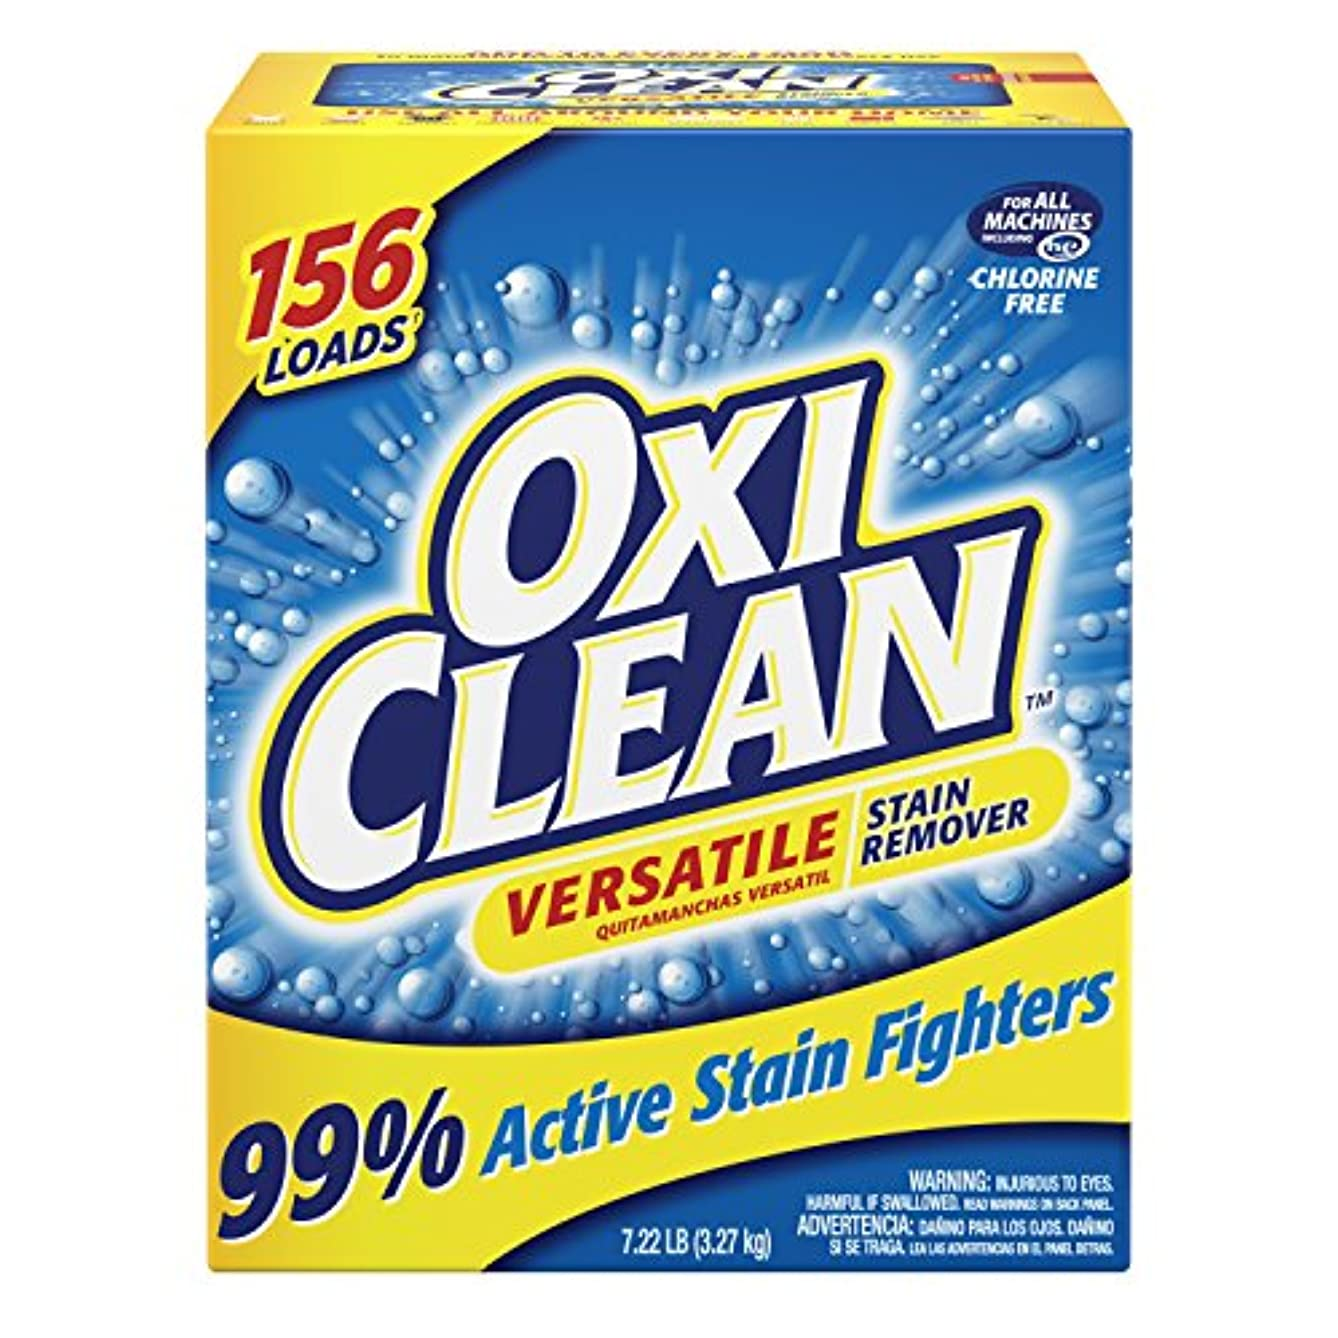 OxiClean Versatile Stain Remover Powder, 7.22 lbs